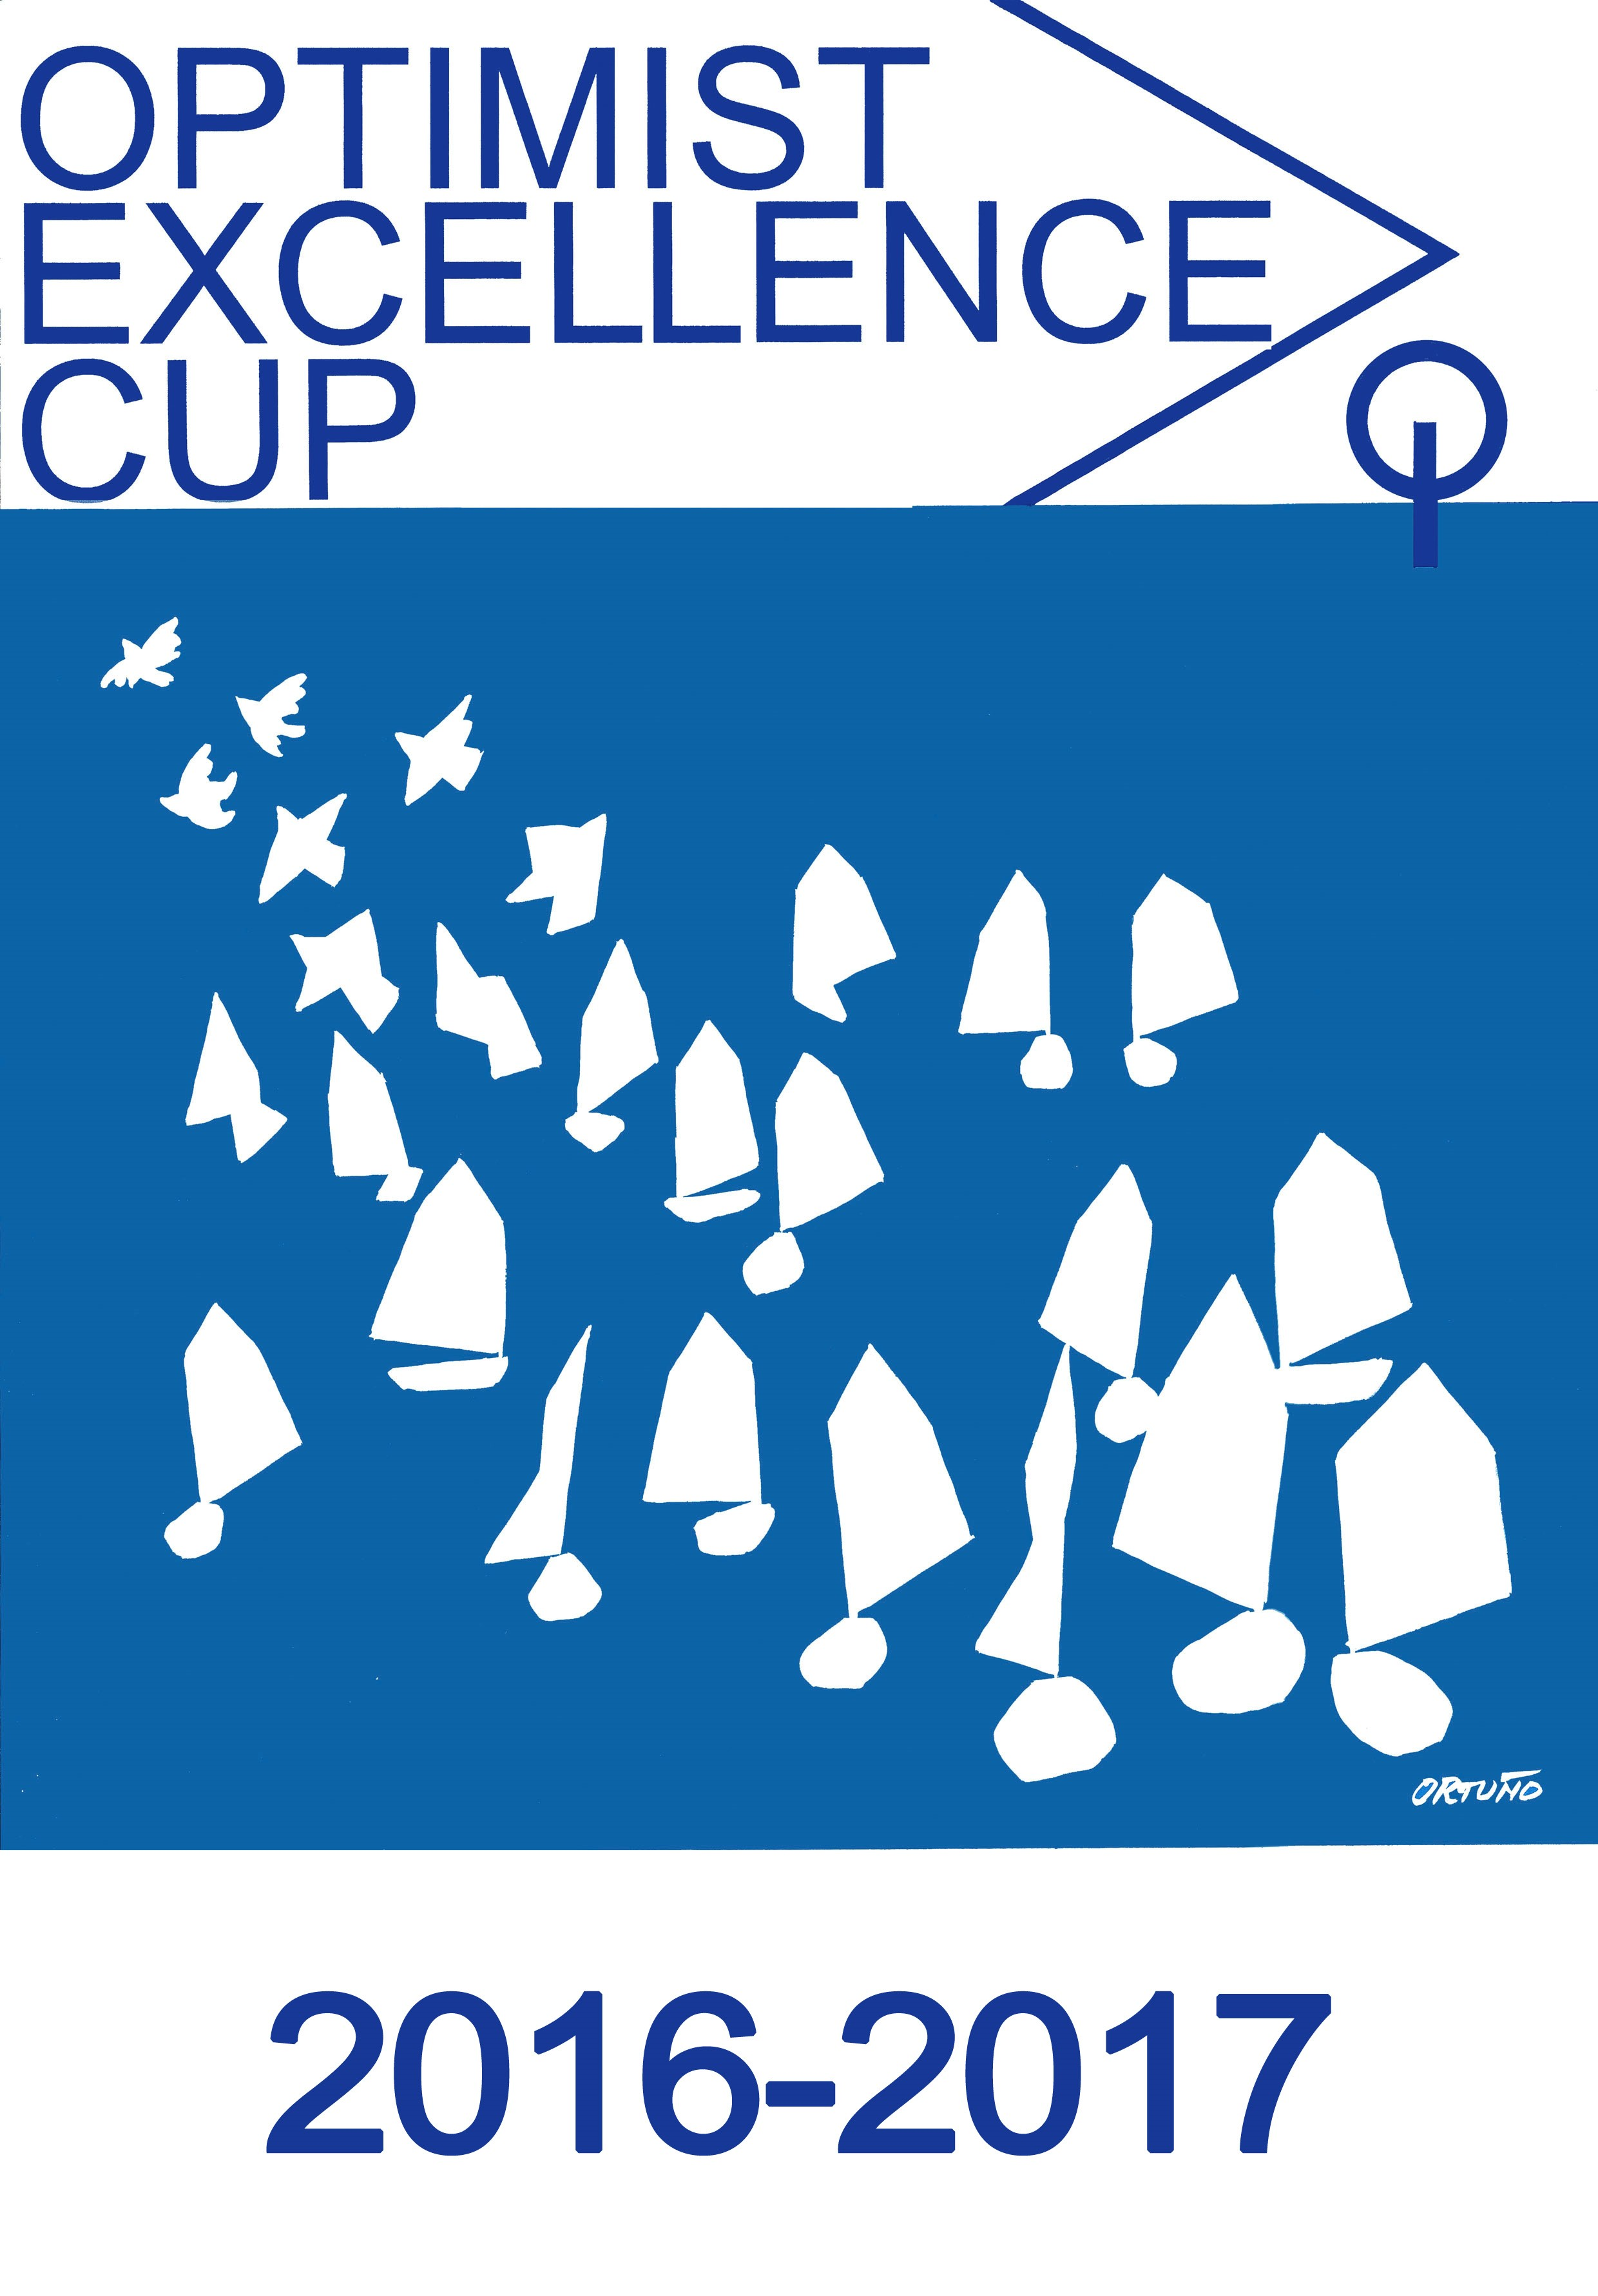 Optimist Excellence Cup 2016-2107